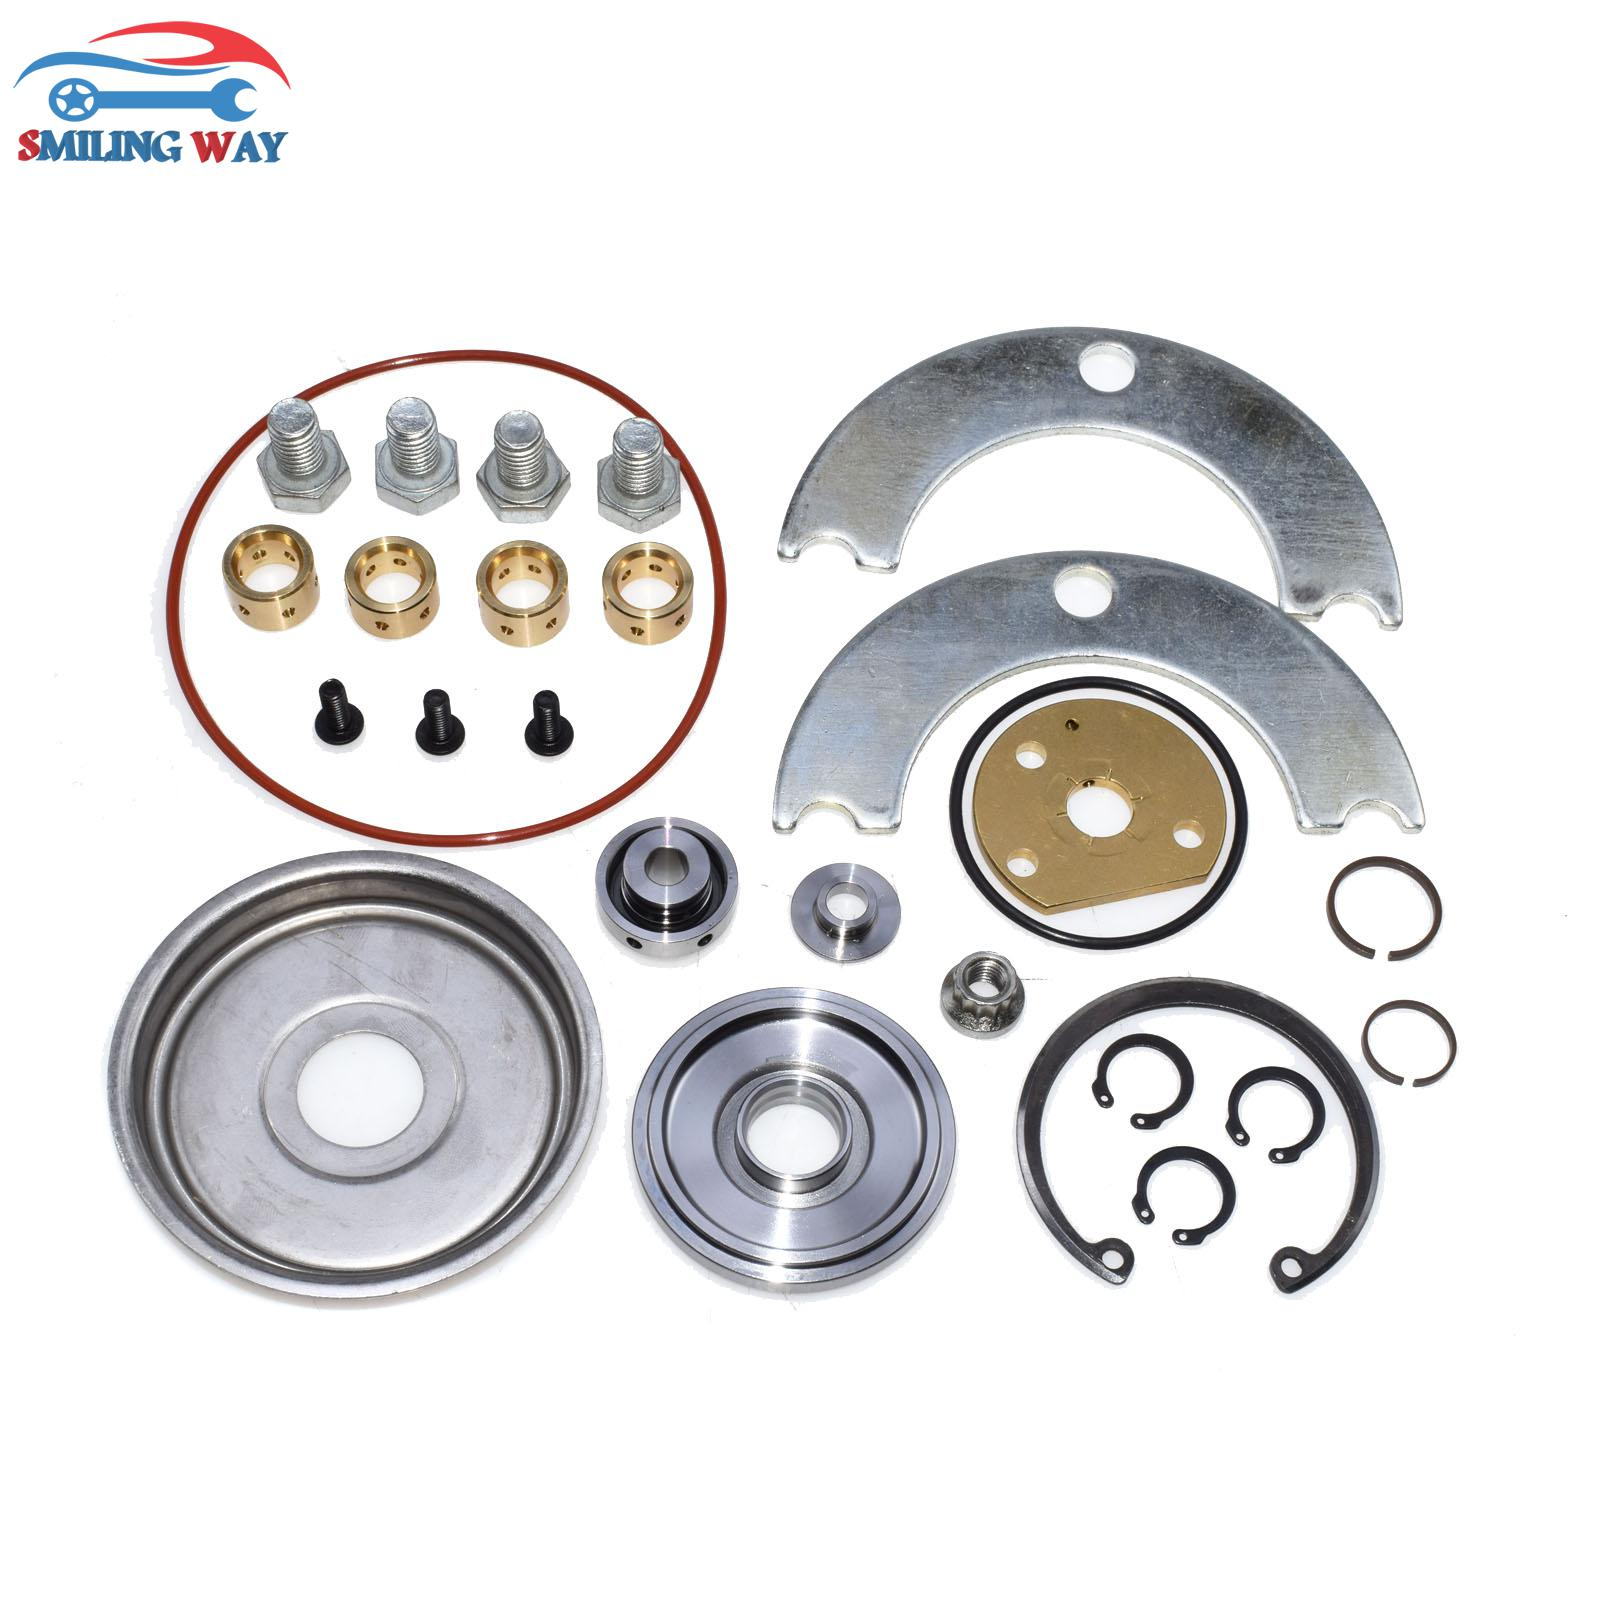 US $28 74 12% OFF|SMILING WAY# Turbo Charger Rebuild Repair Kit TB02 TB25  TB28 T2 T25 T28 For Nissan Eclipse 300zx OE# 431876 5070S 431876 5126S-in